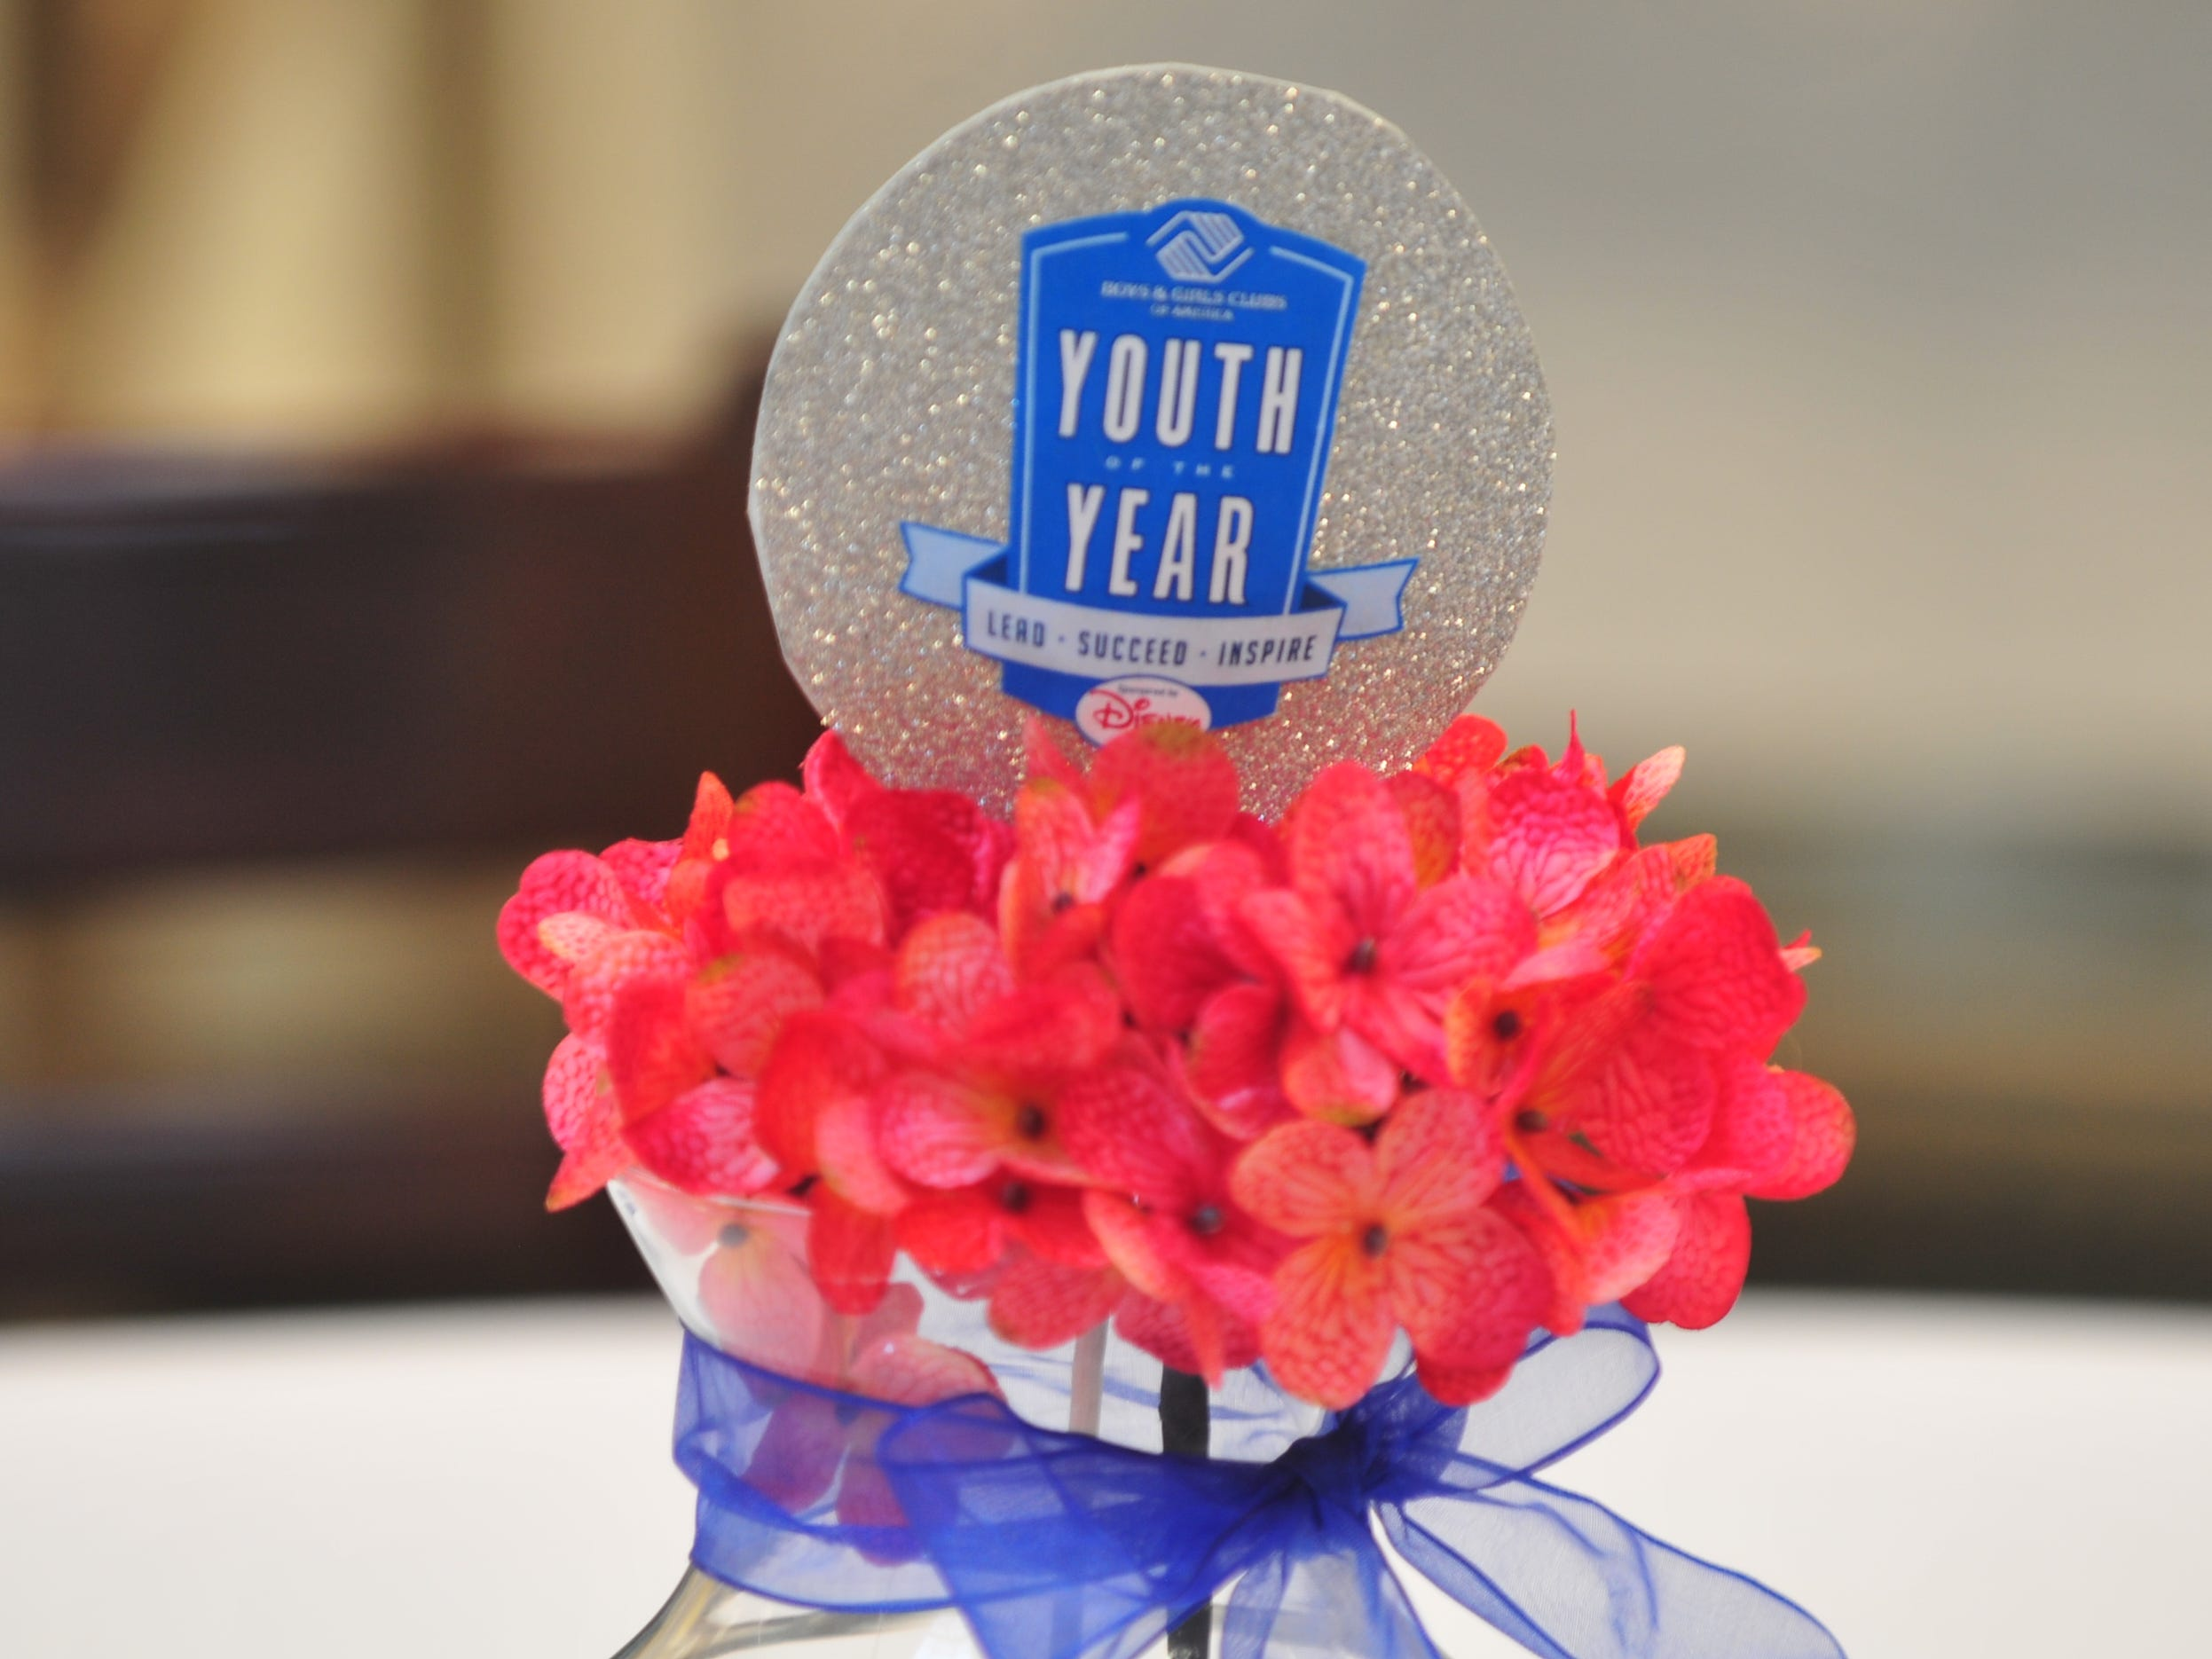 The Boys and Girls Clubs of Wayne County conducted its competition for Youth of the Year on Monday at the Jeffers Unit.